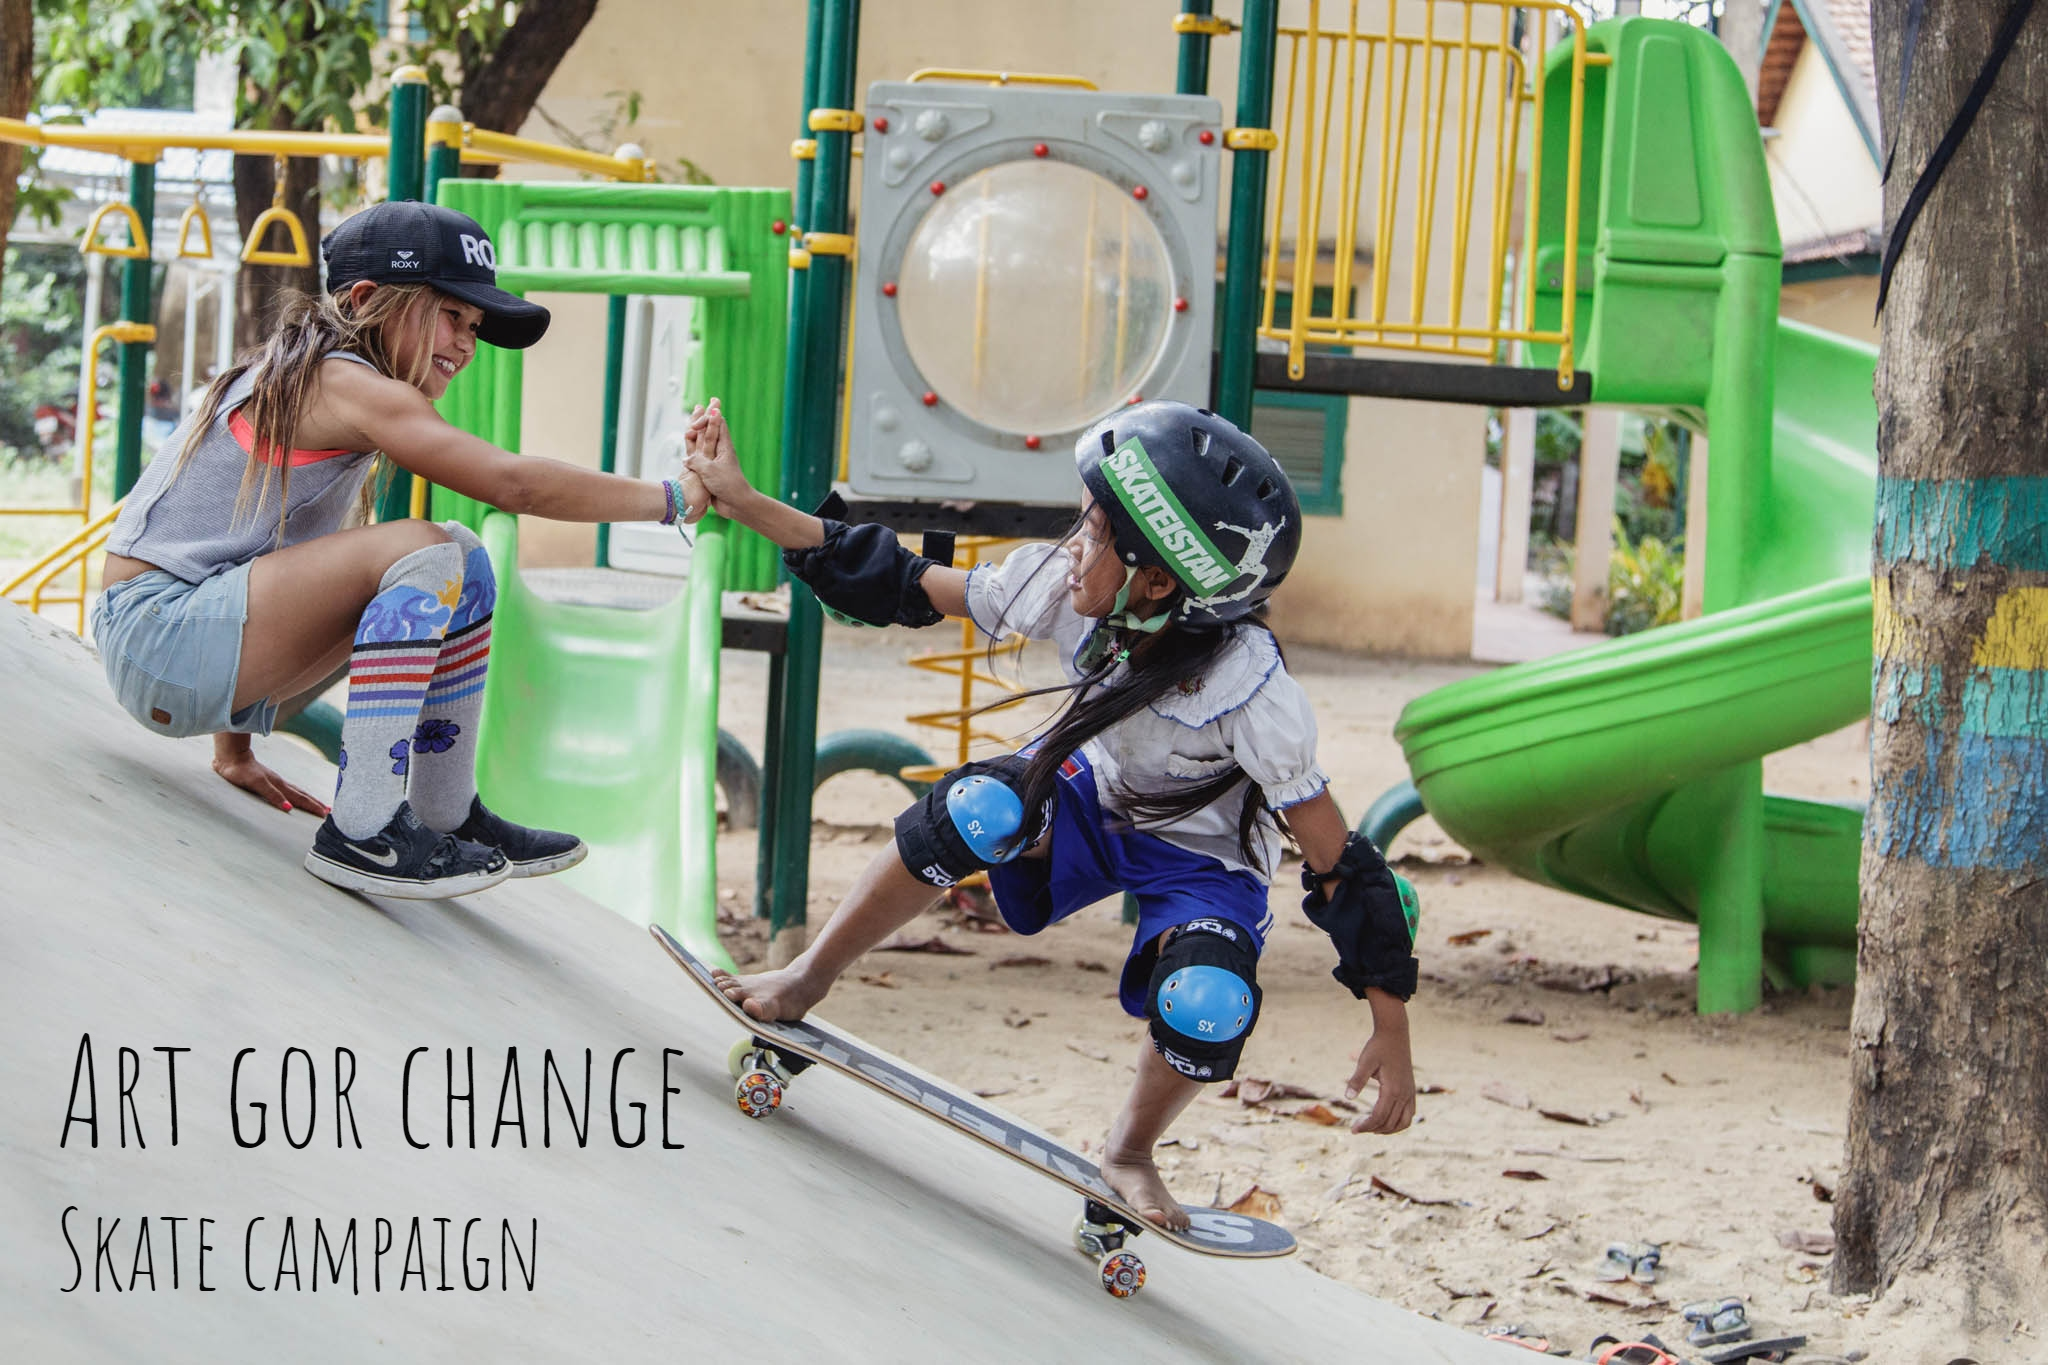 Art for Change | Skate campaign